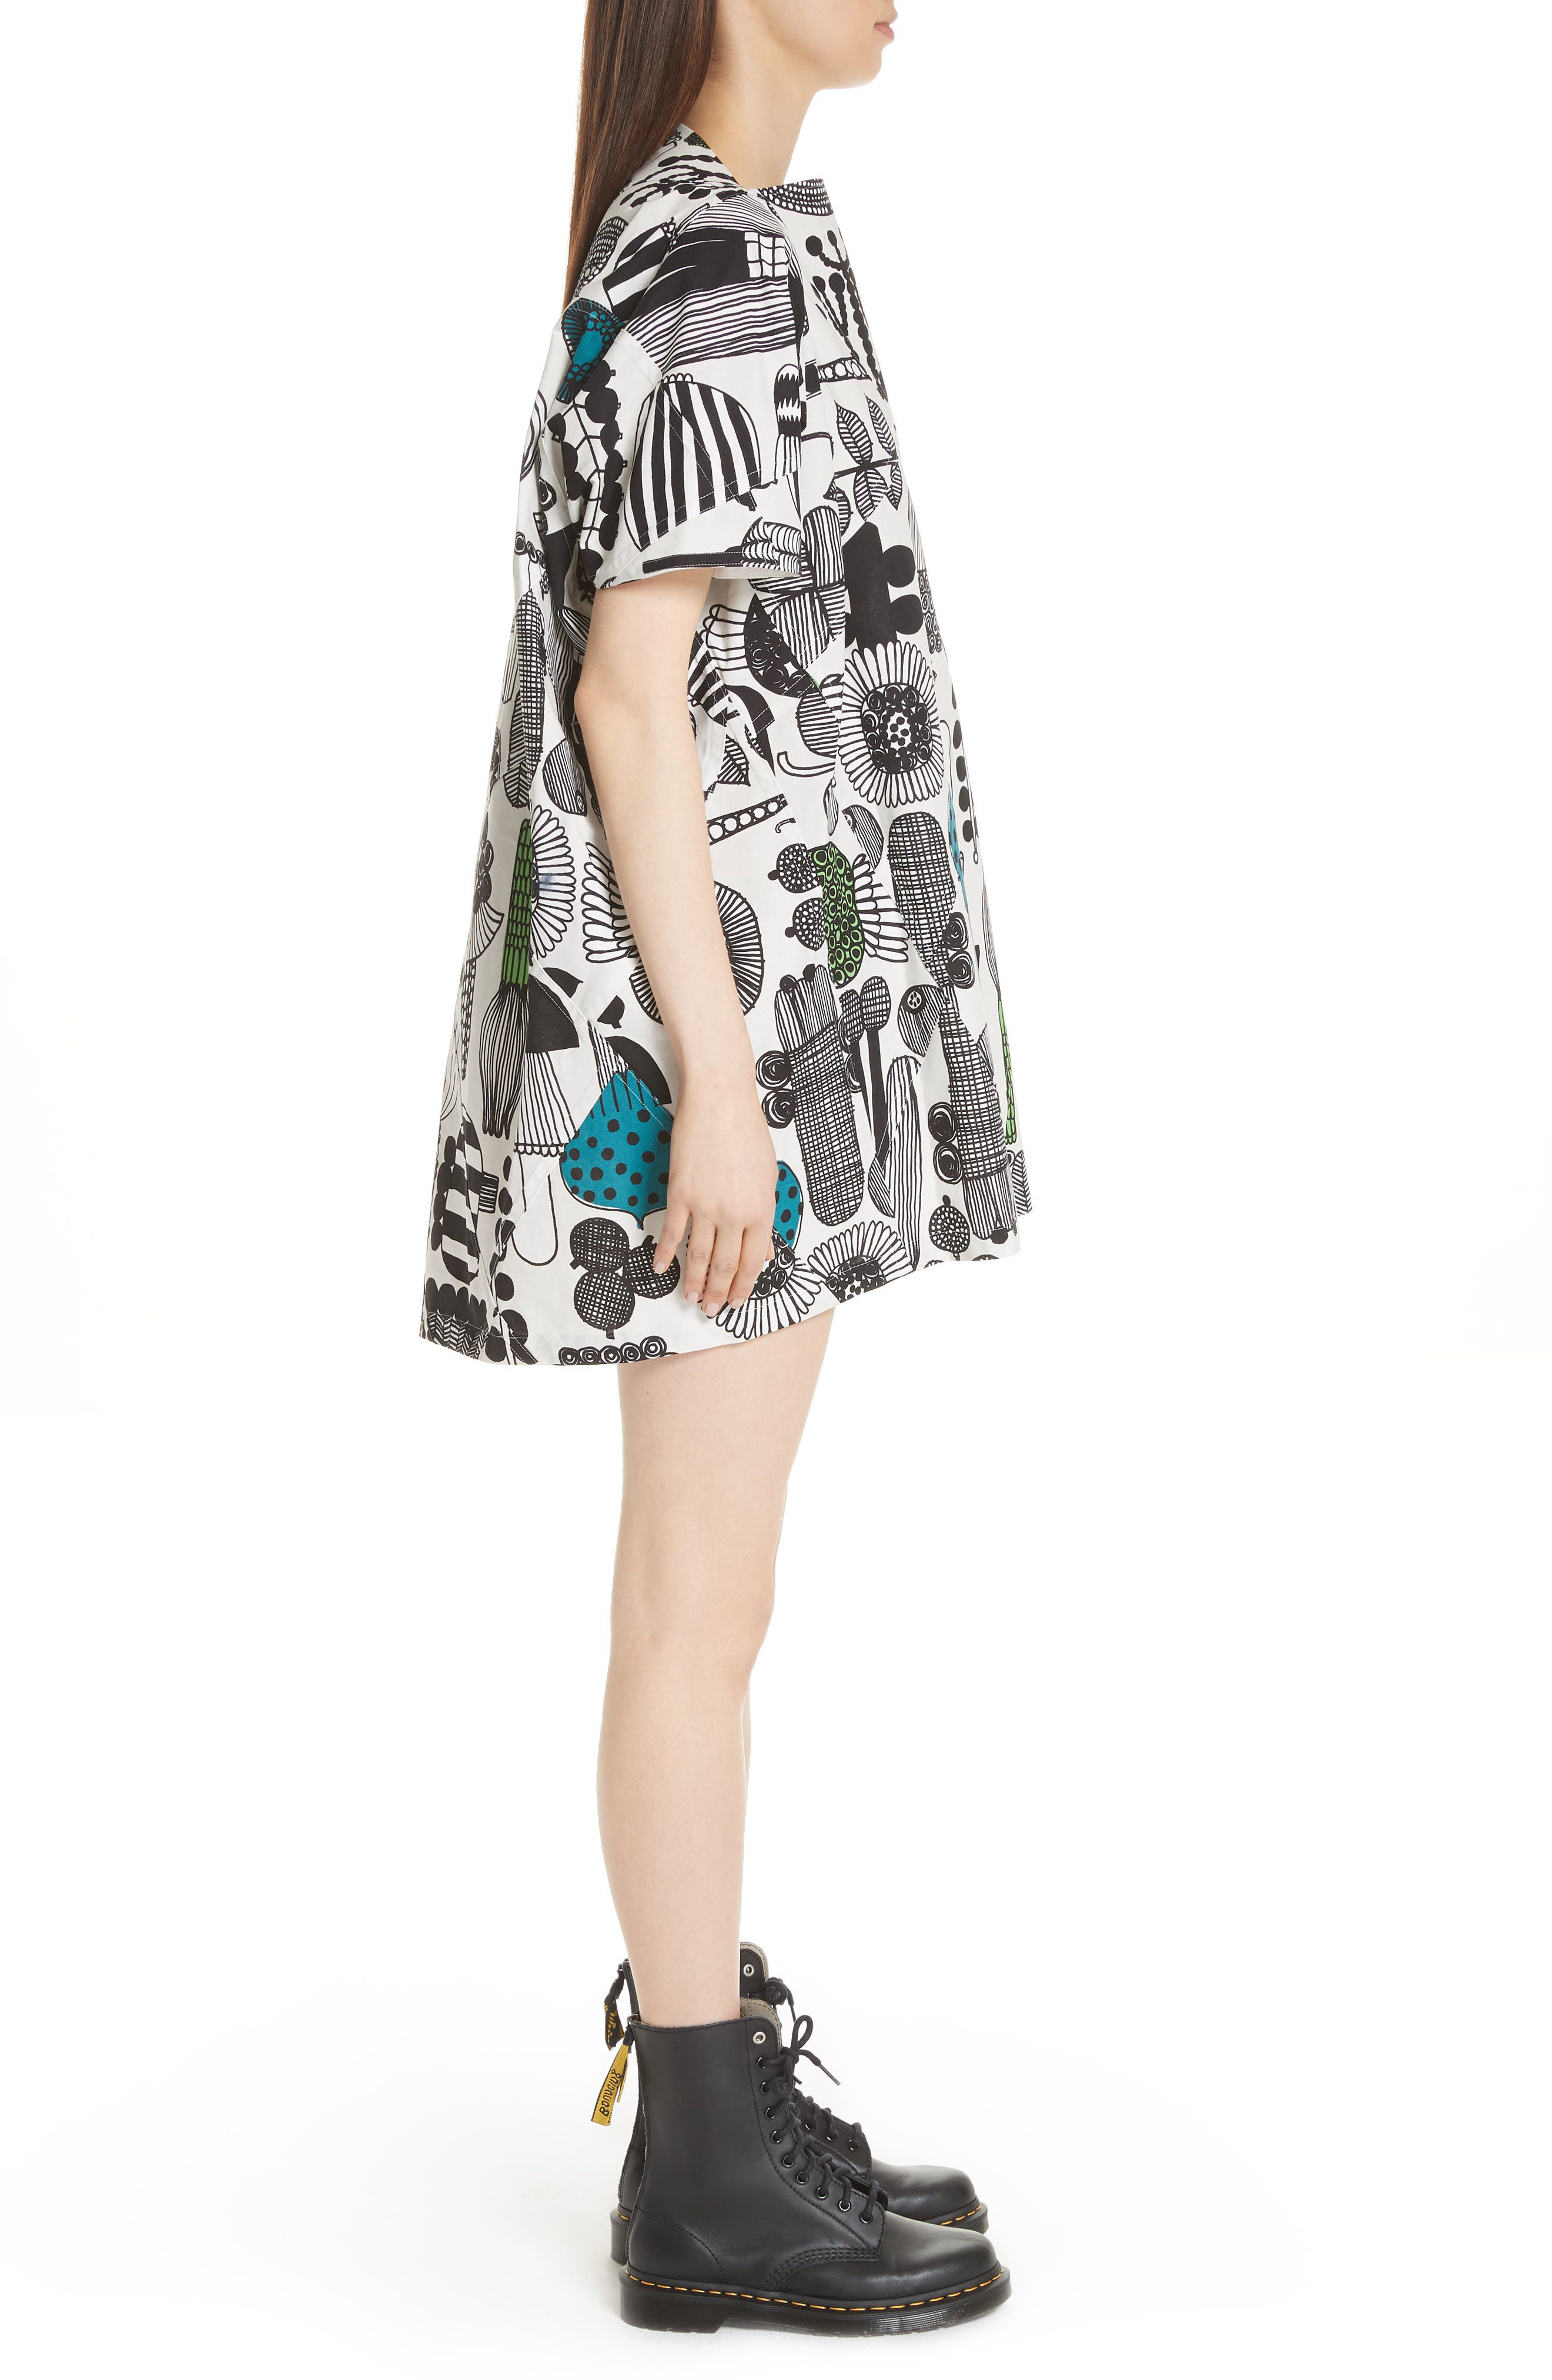 Vegetable Print Dress,                             Alternate thumbnail 3, color,                             Gry/ Grn/ Blk